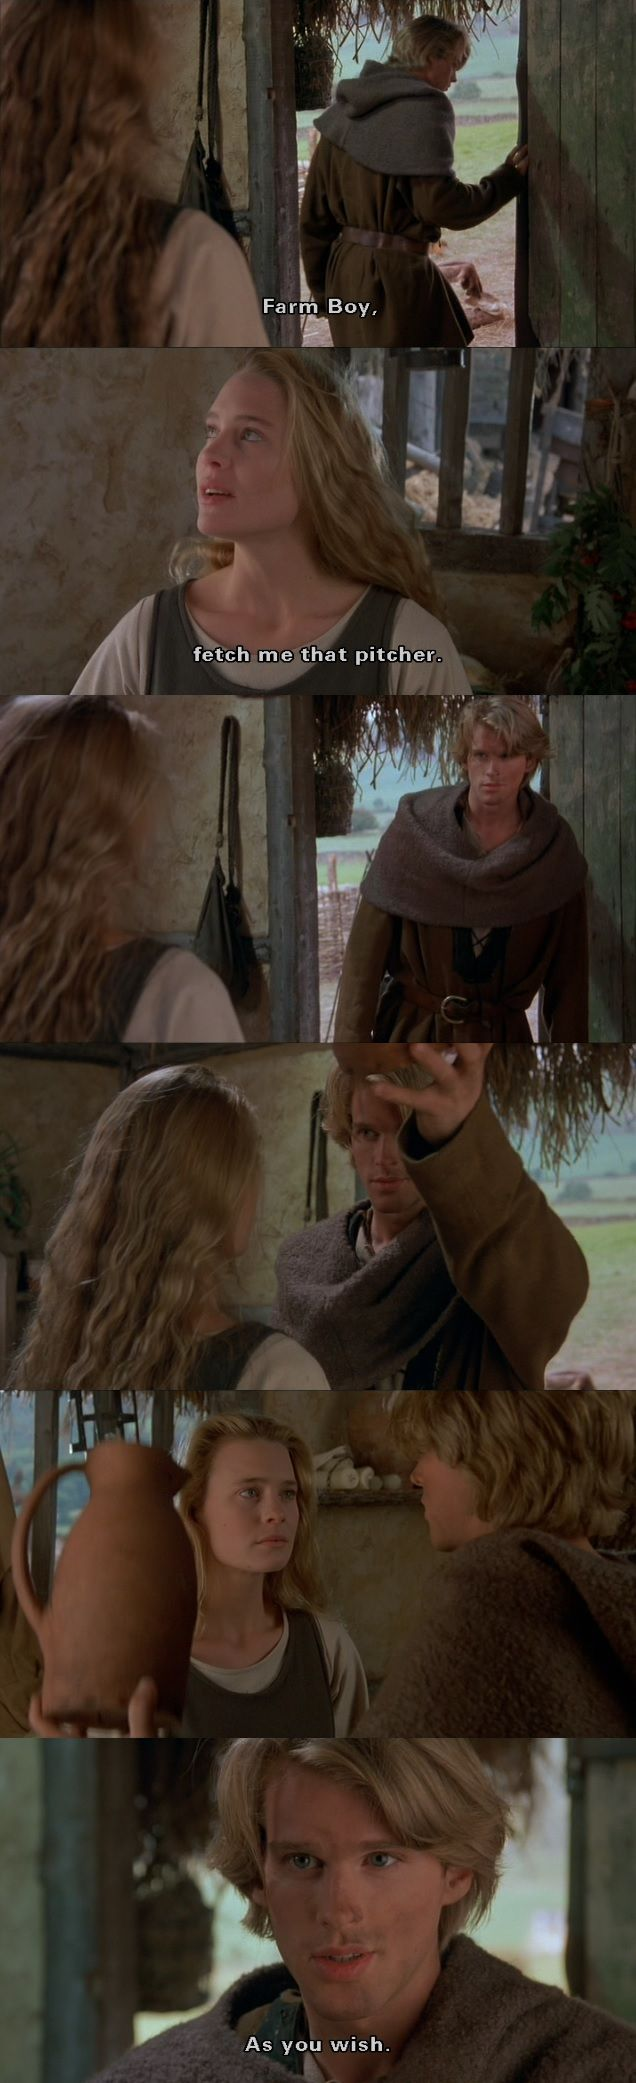 """Fetch me that pitcher?"" (The Princess Bride)"